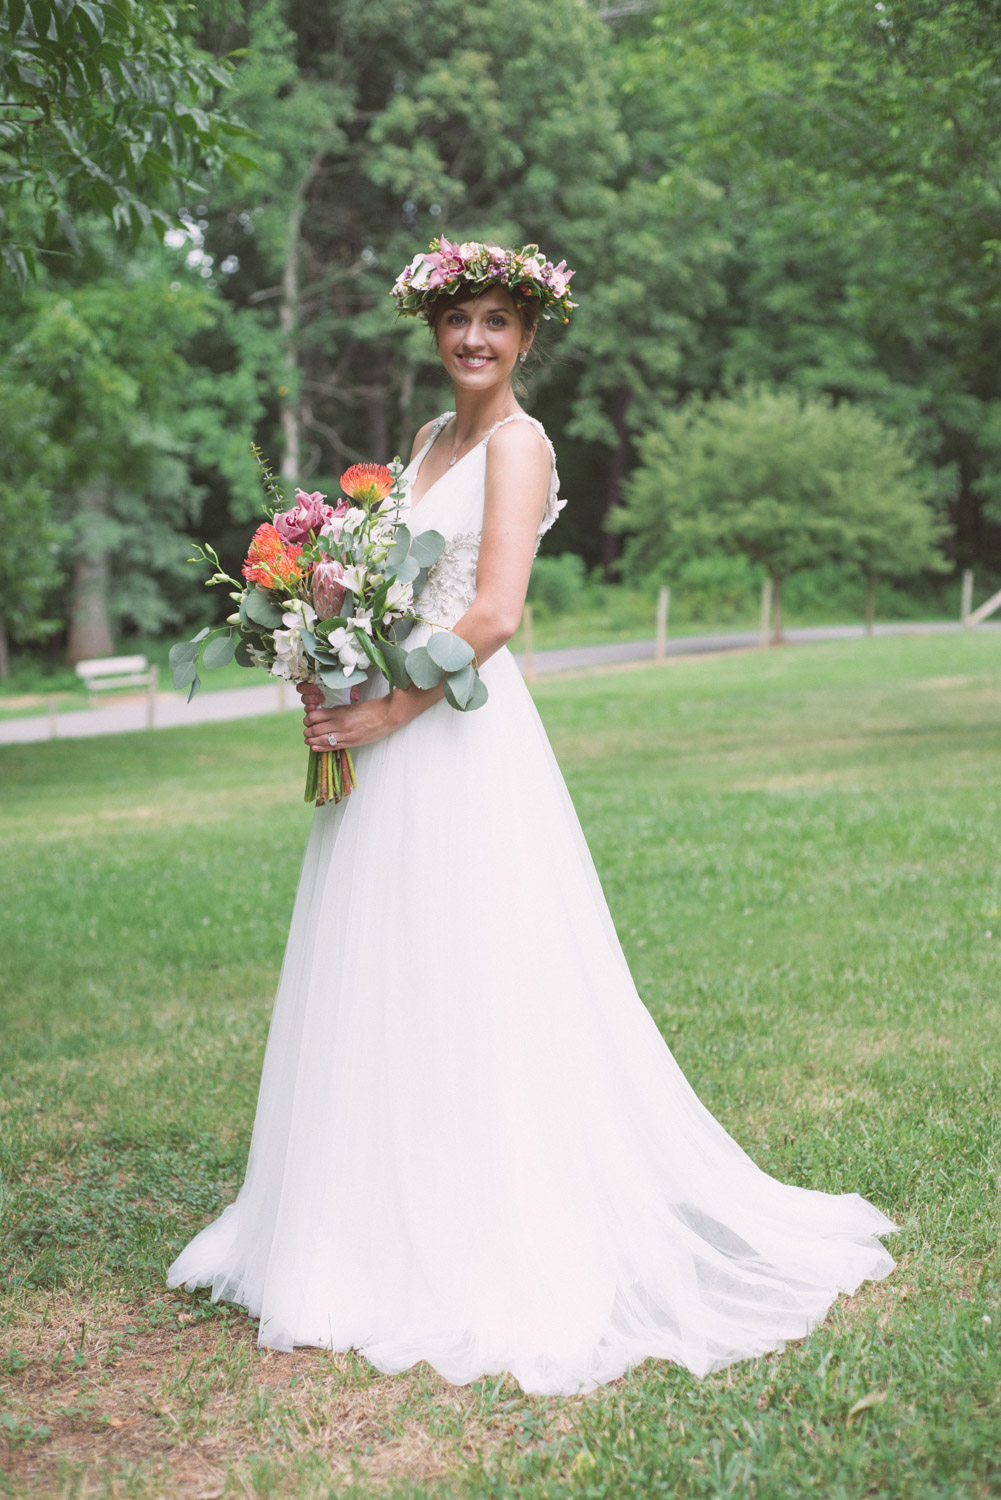 Atlanta-Wedding-Photographer-LeahAndMark-043